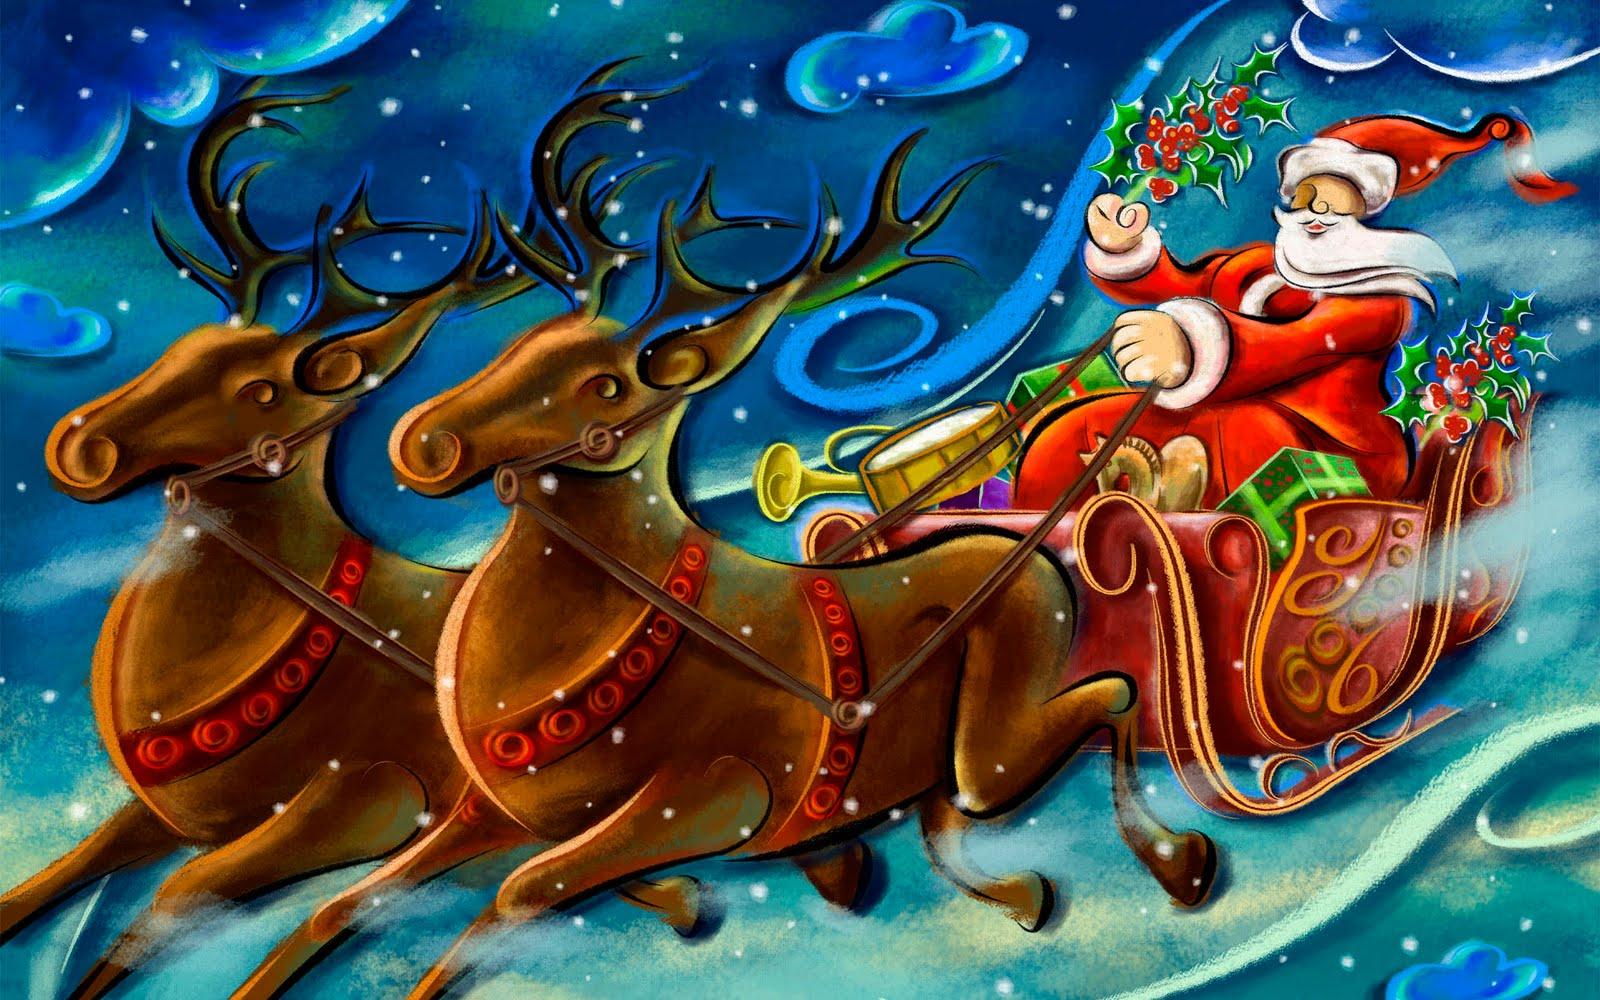 http://1.bp.blogspot.com/-V9j4u1SWtdU/TsSk7YCxwaI/AAAAAAAADf0/H0dVLx1C67E/s1600/santa_clause_creative_art_work_hd_Wallpapers_wallpape.in.jpg